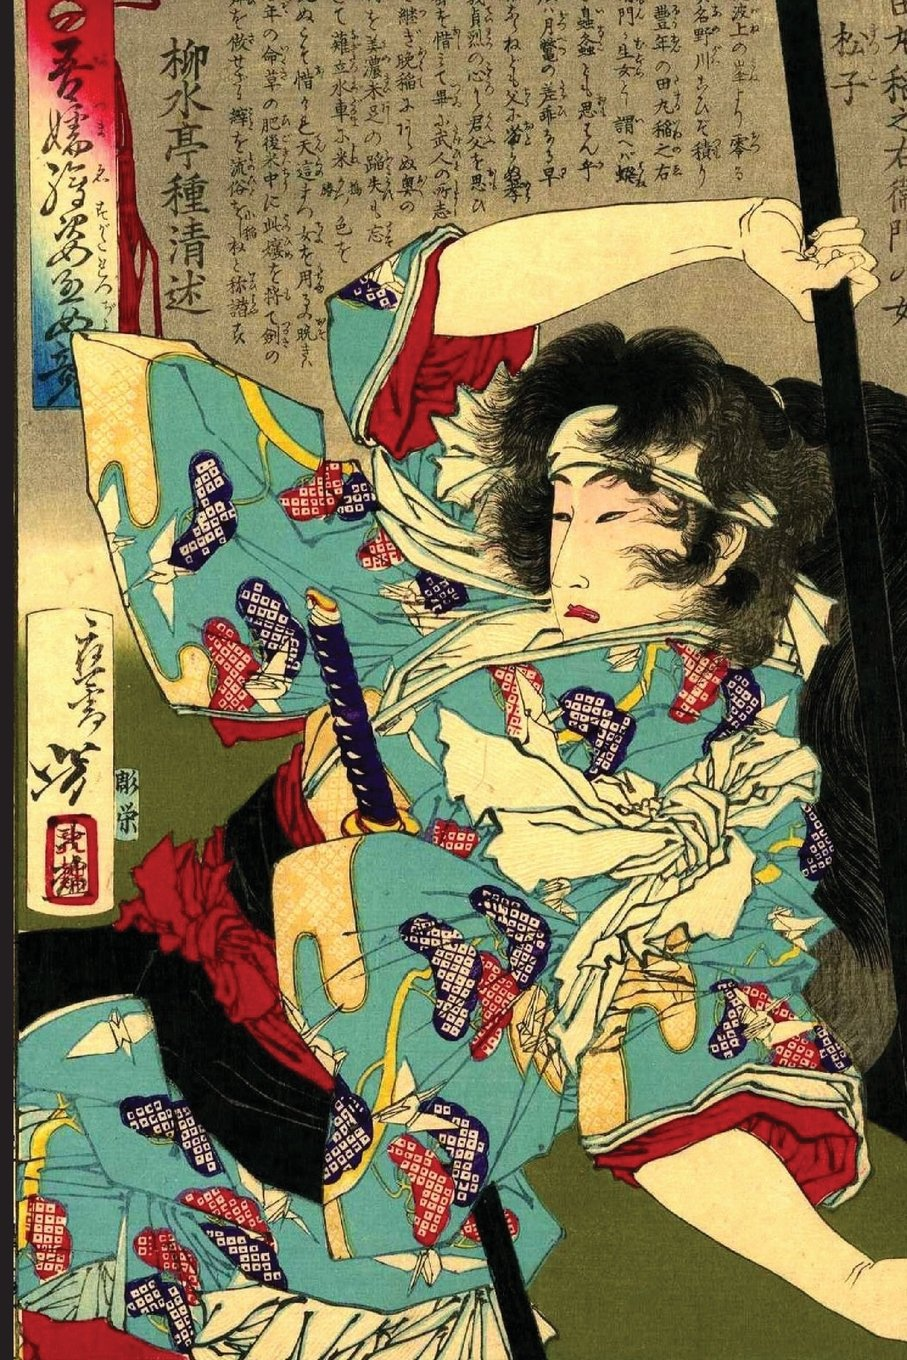 Read Online Japanese Woodblock Print Notebook no.18: Japanese ukiyo style woodblock print notebook, journal book. Attractive 6x9 lined Japanese art blank book. Traditional Japanese female geisha warrior. ebook